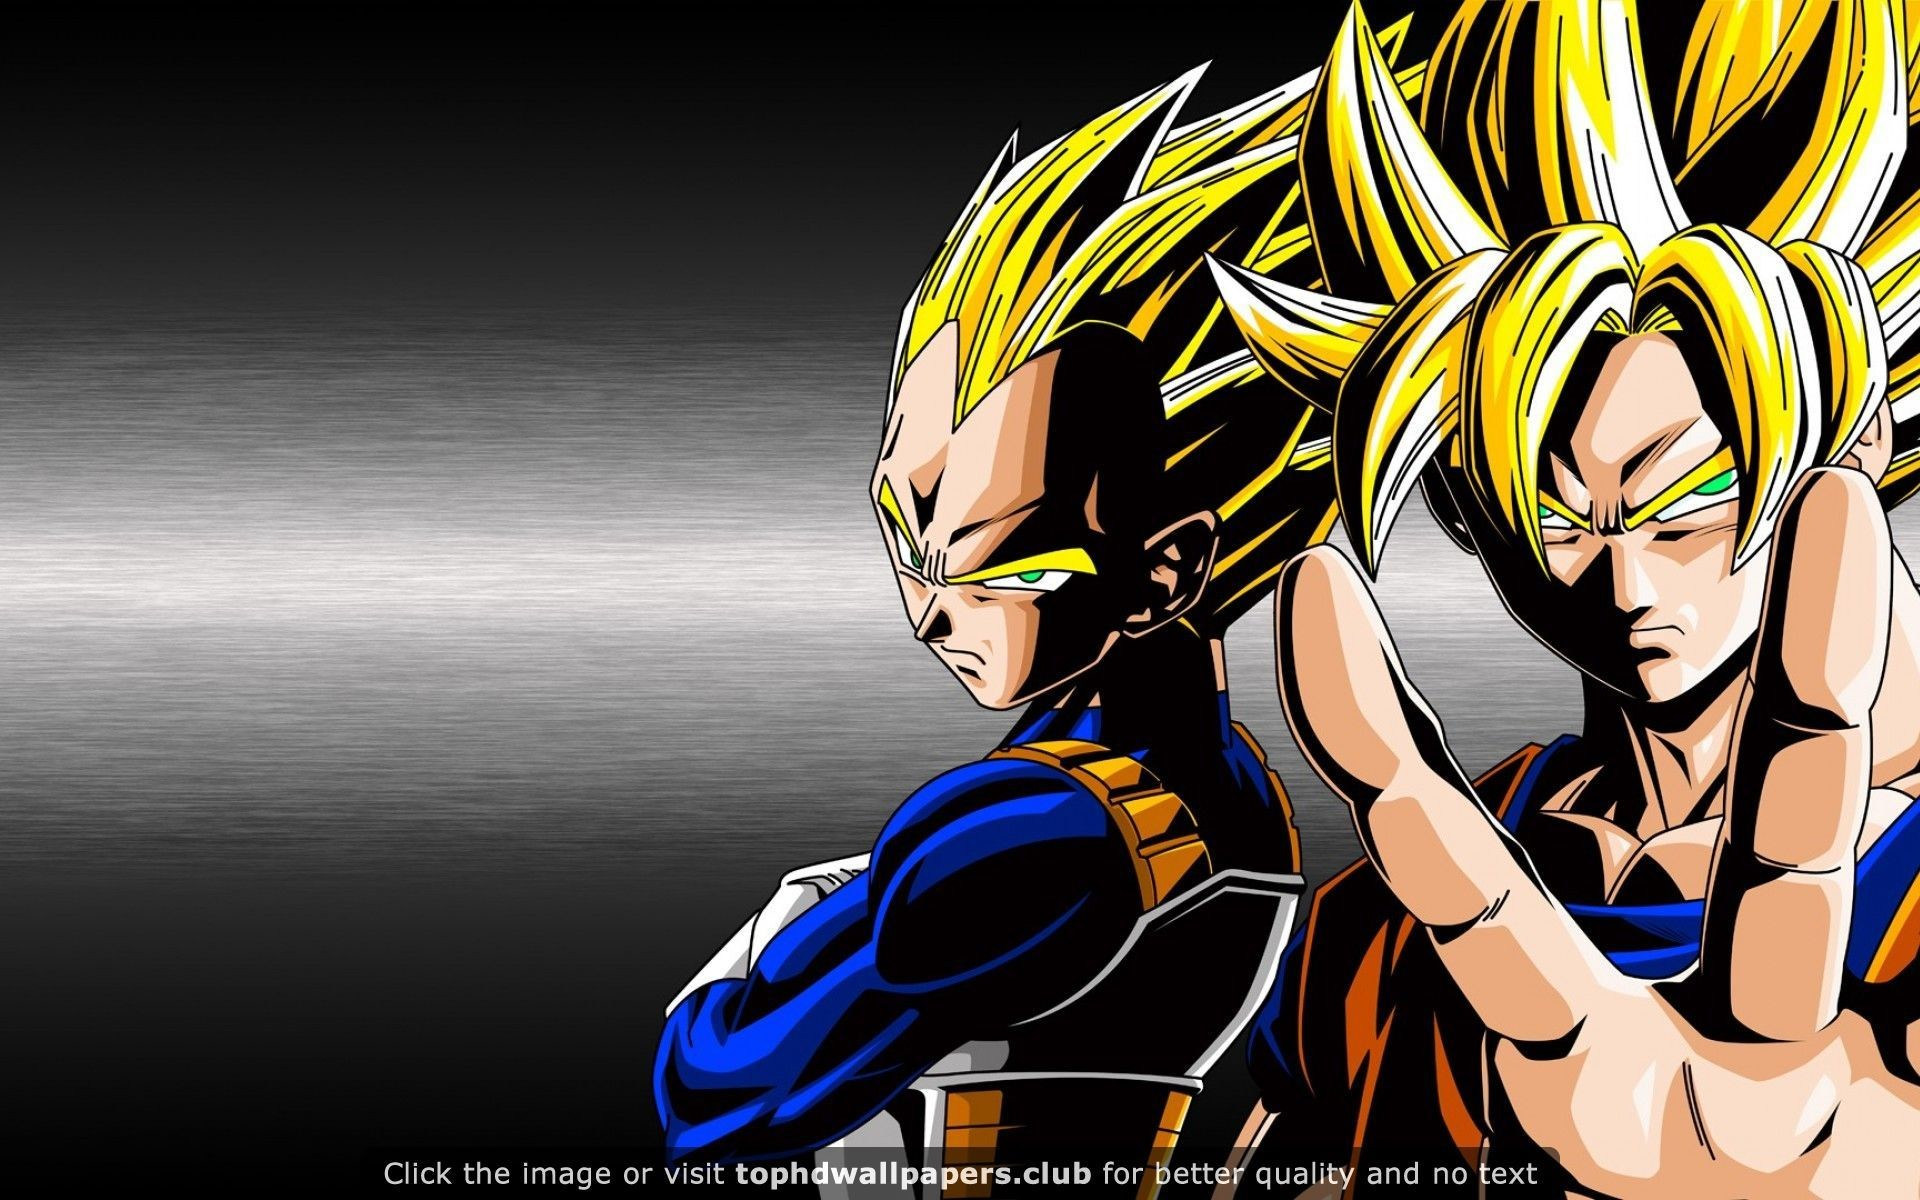 Dbz wallpaper goku and vegeta 76 images - Images dragon ball z ...